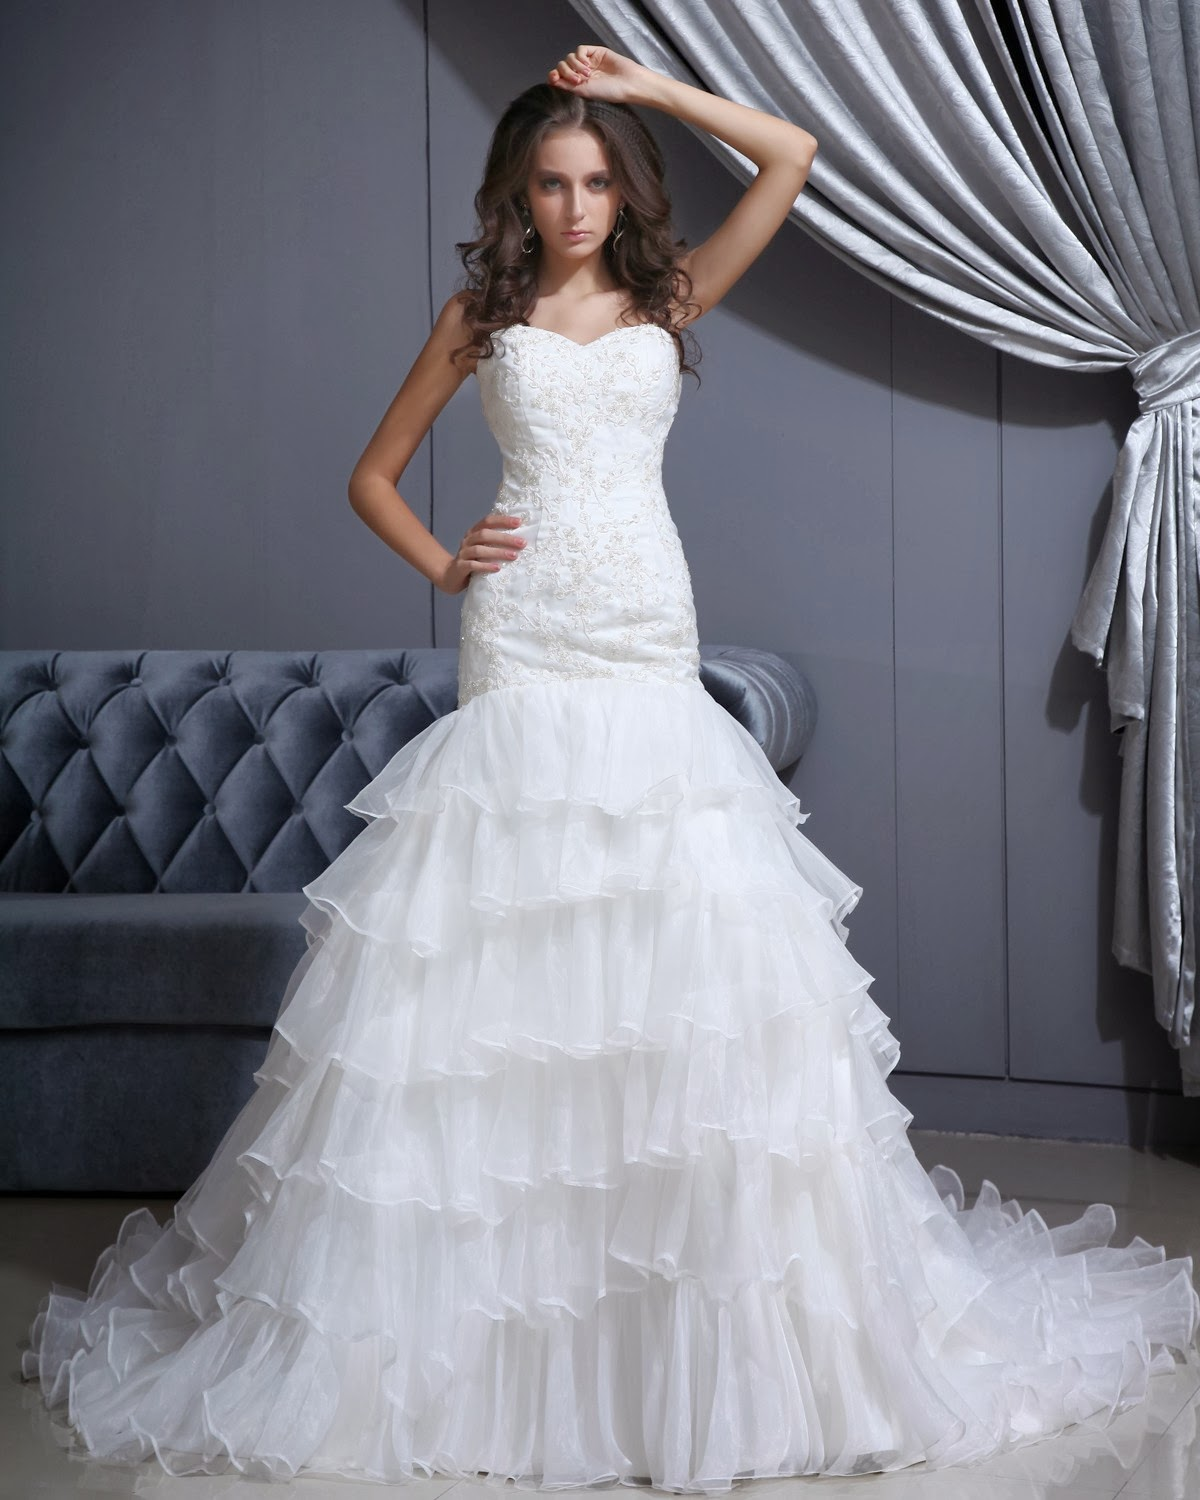 Wedding Dresess: Wedding Dress: Finding Discount Wedding Gowns Online